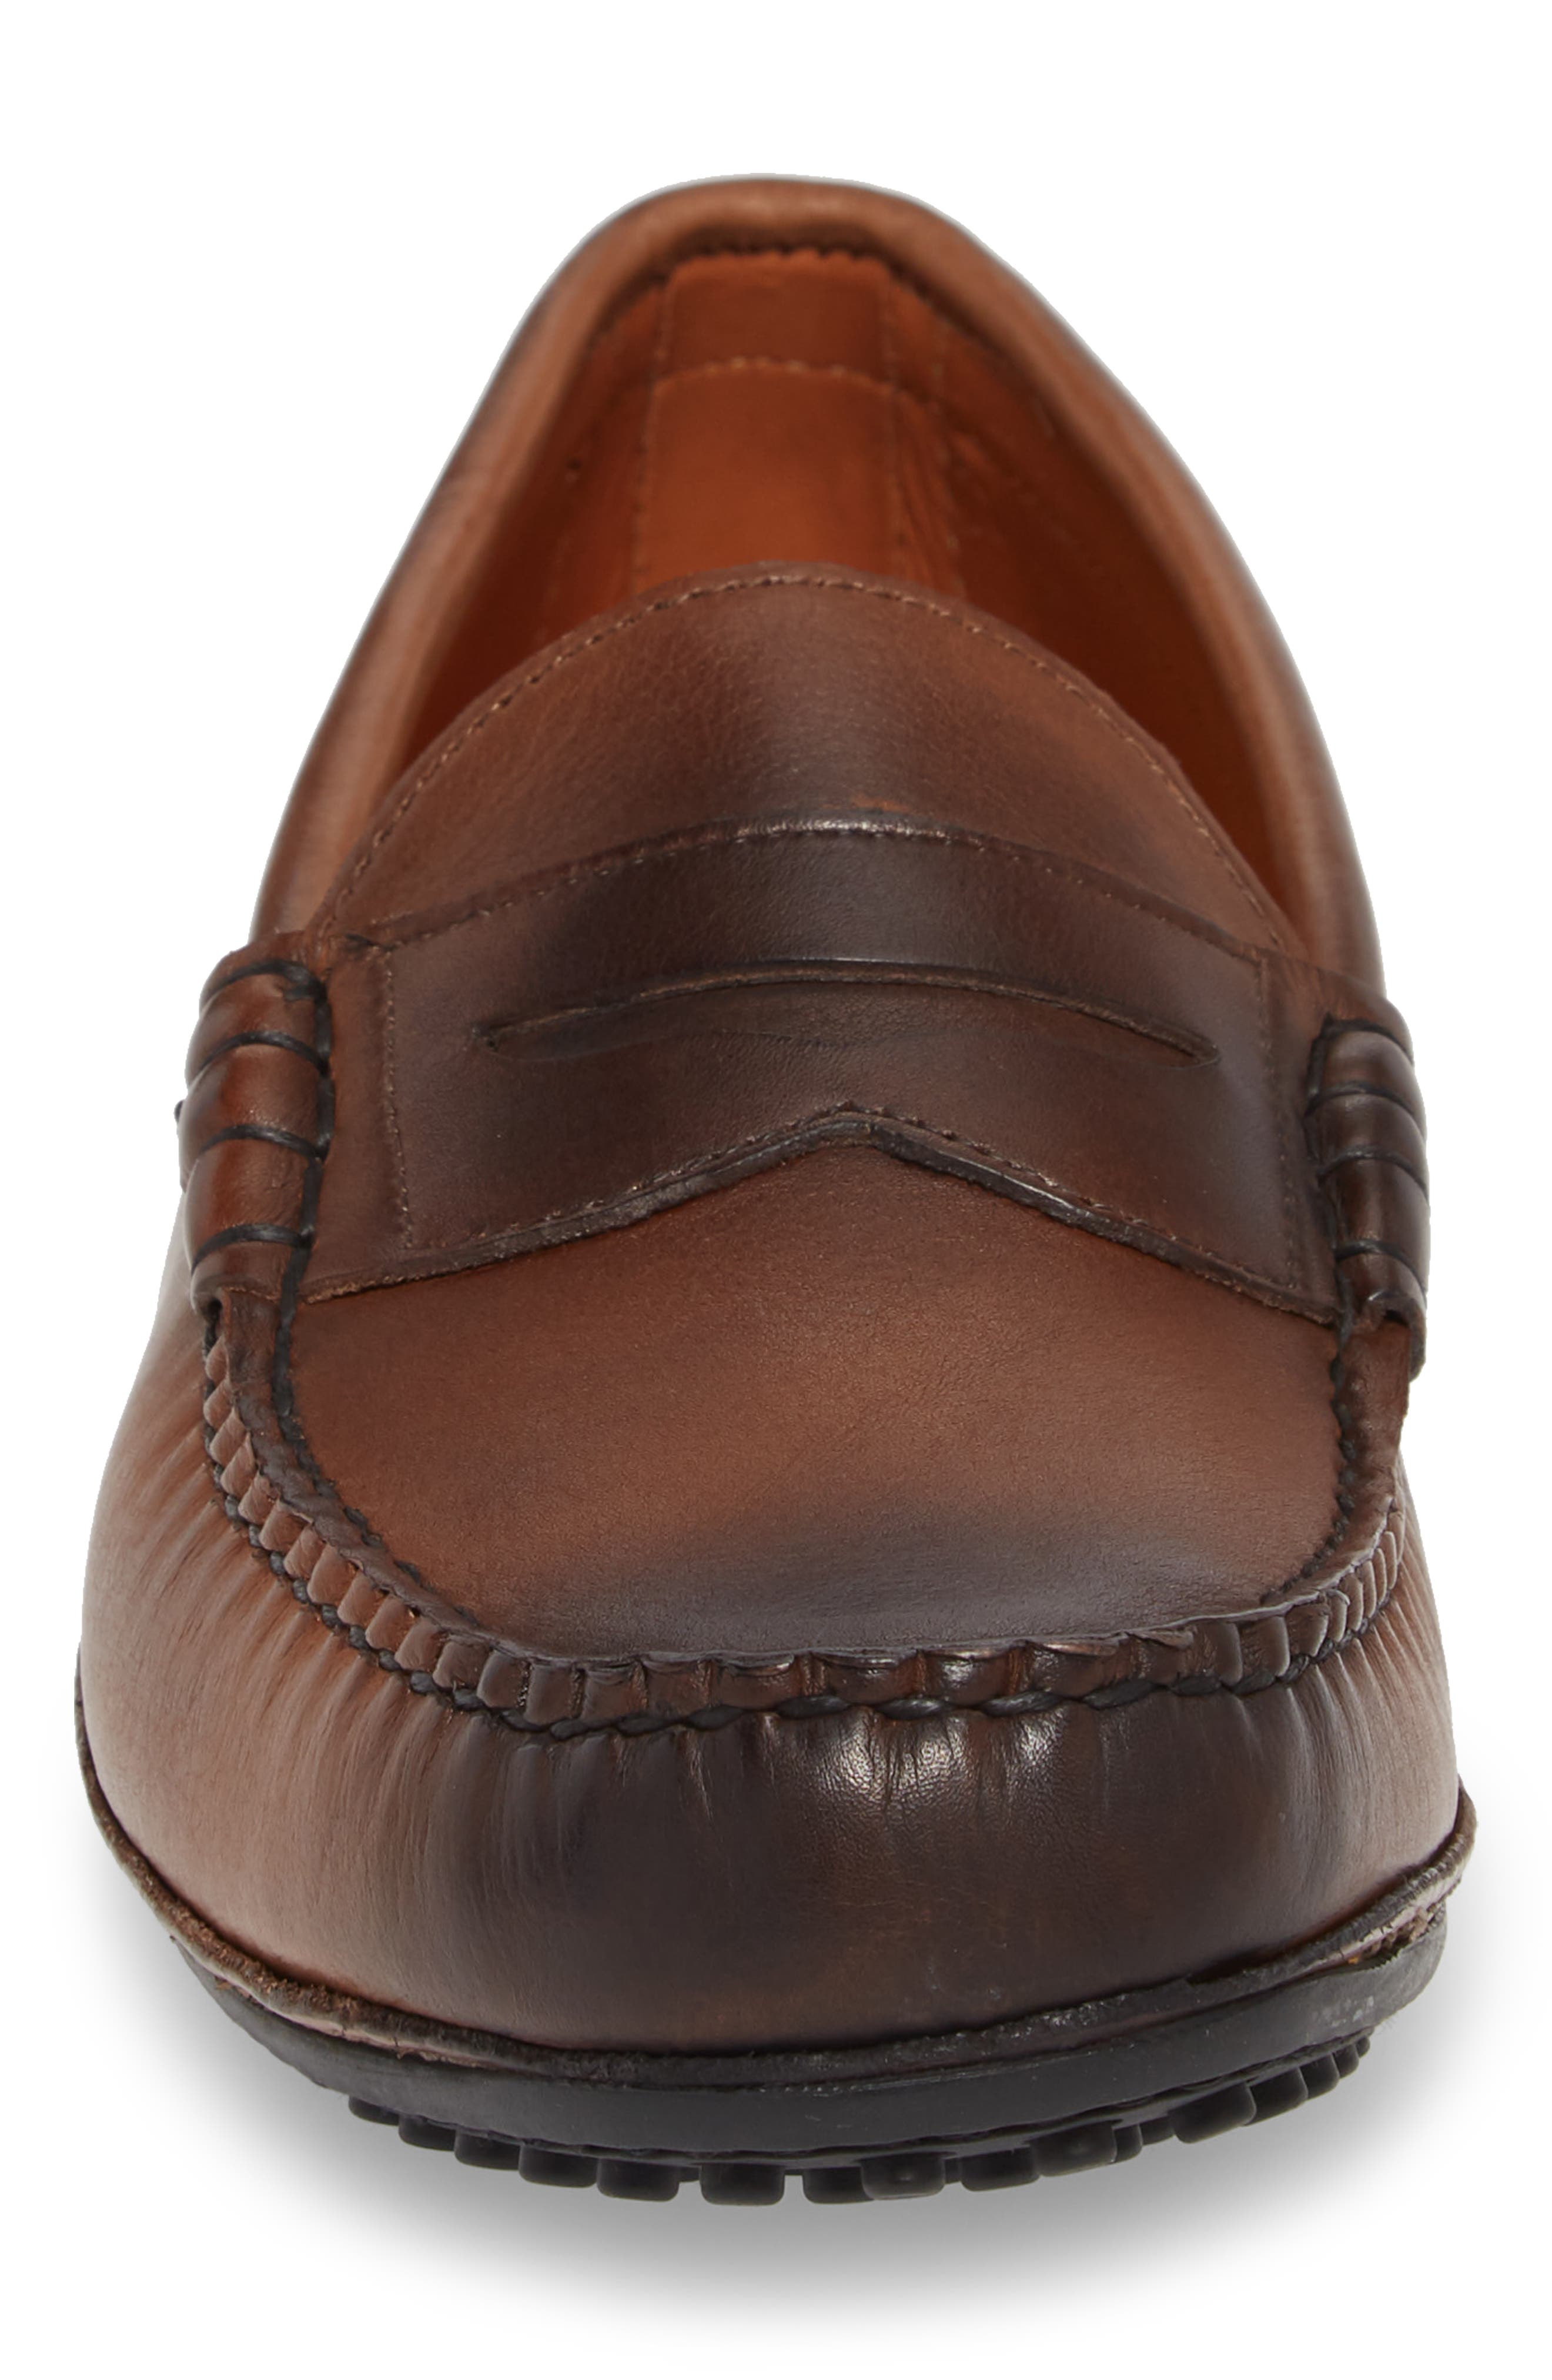 Siesta Key Penny Loafer,                             Alternate thumbnail 4, color,                             Brown Leather